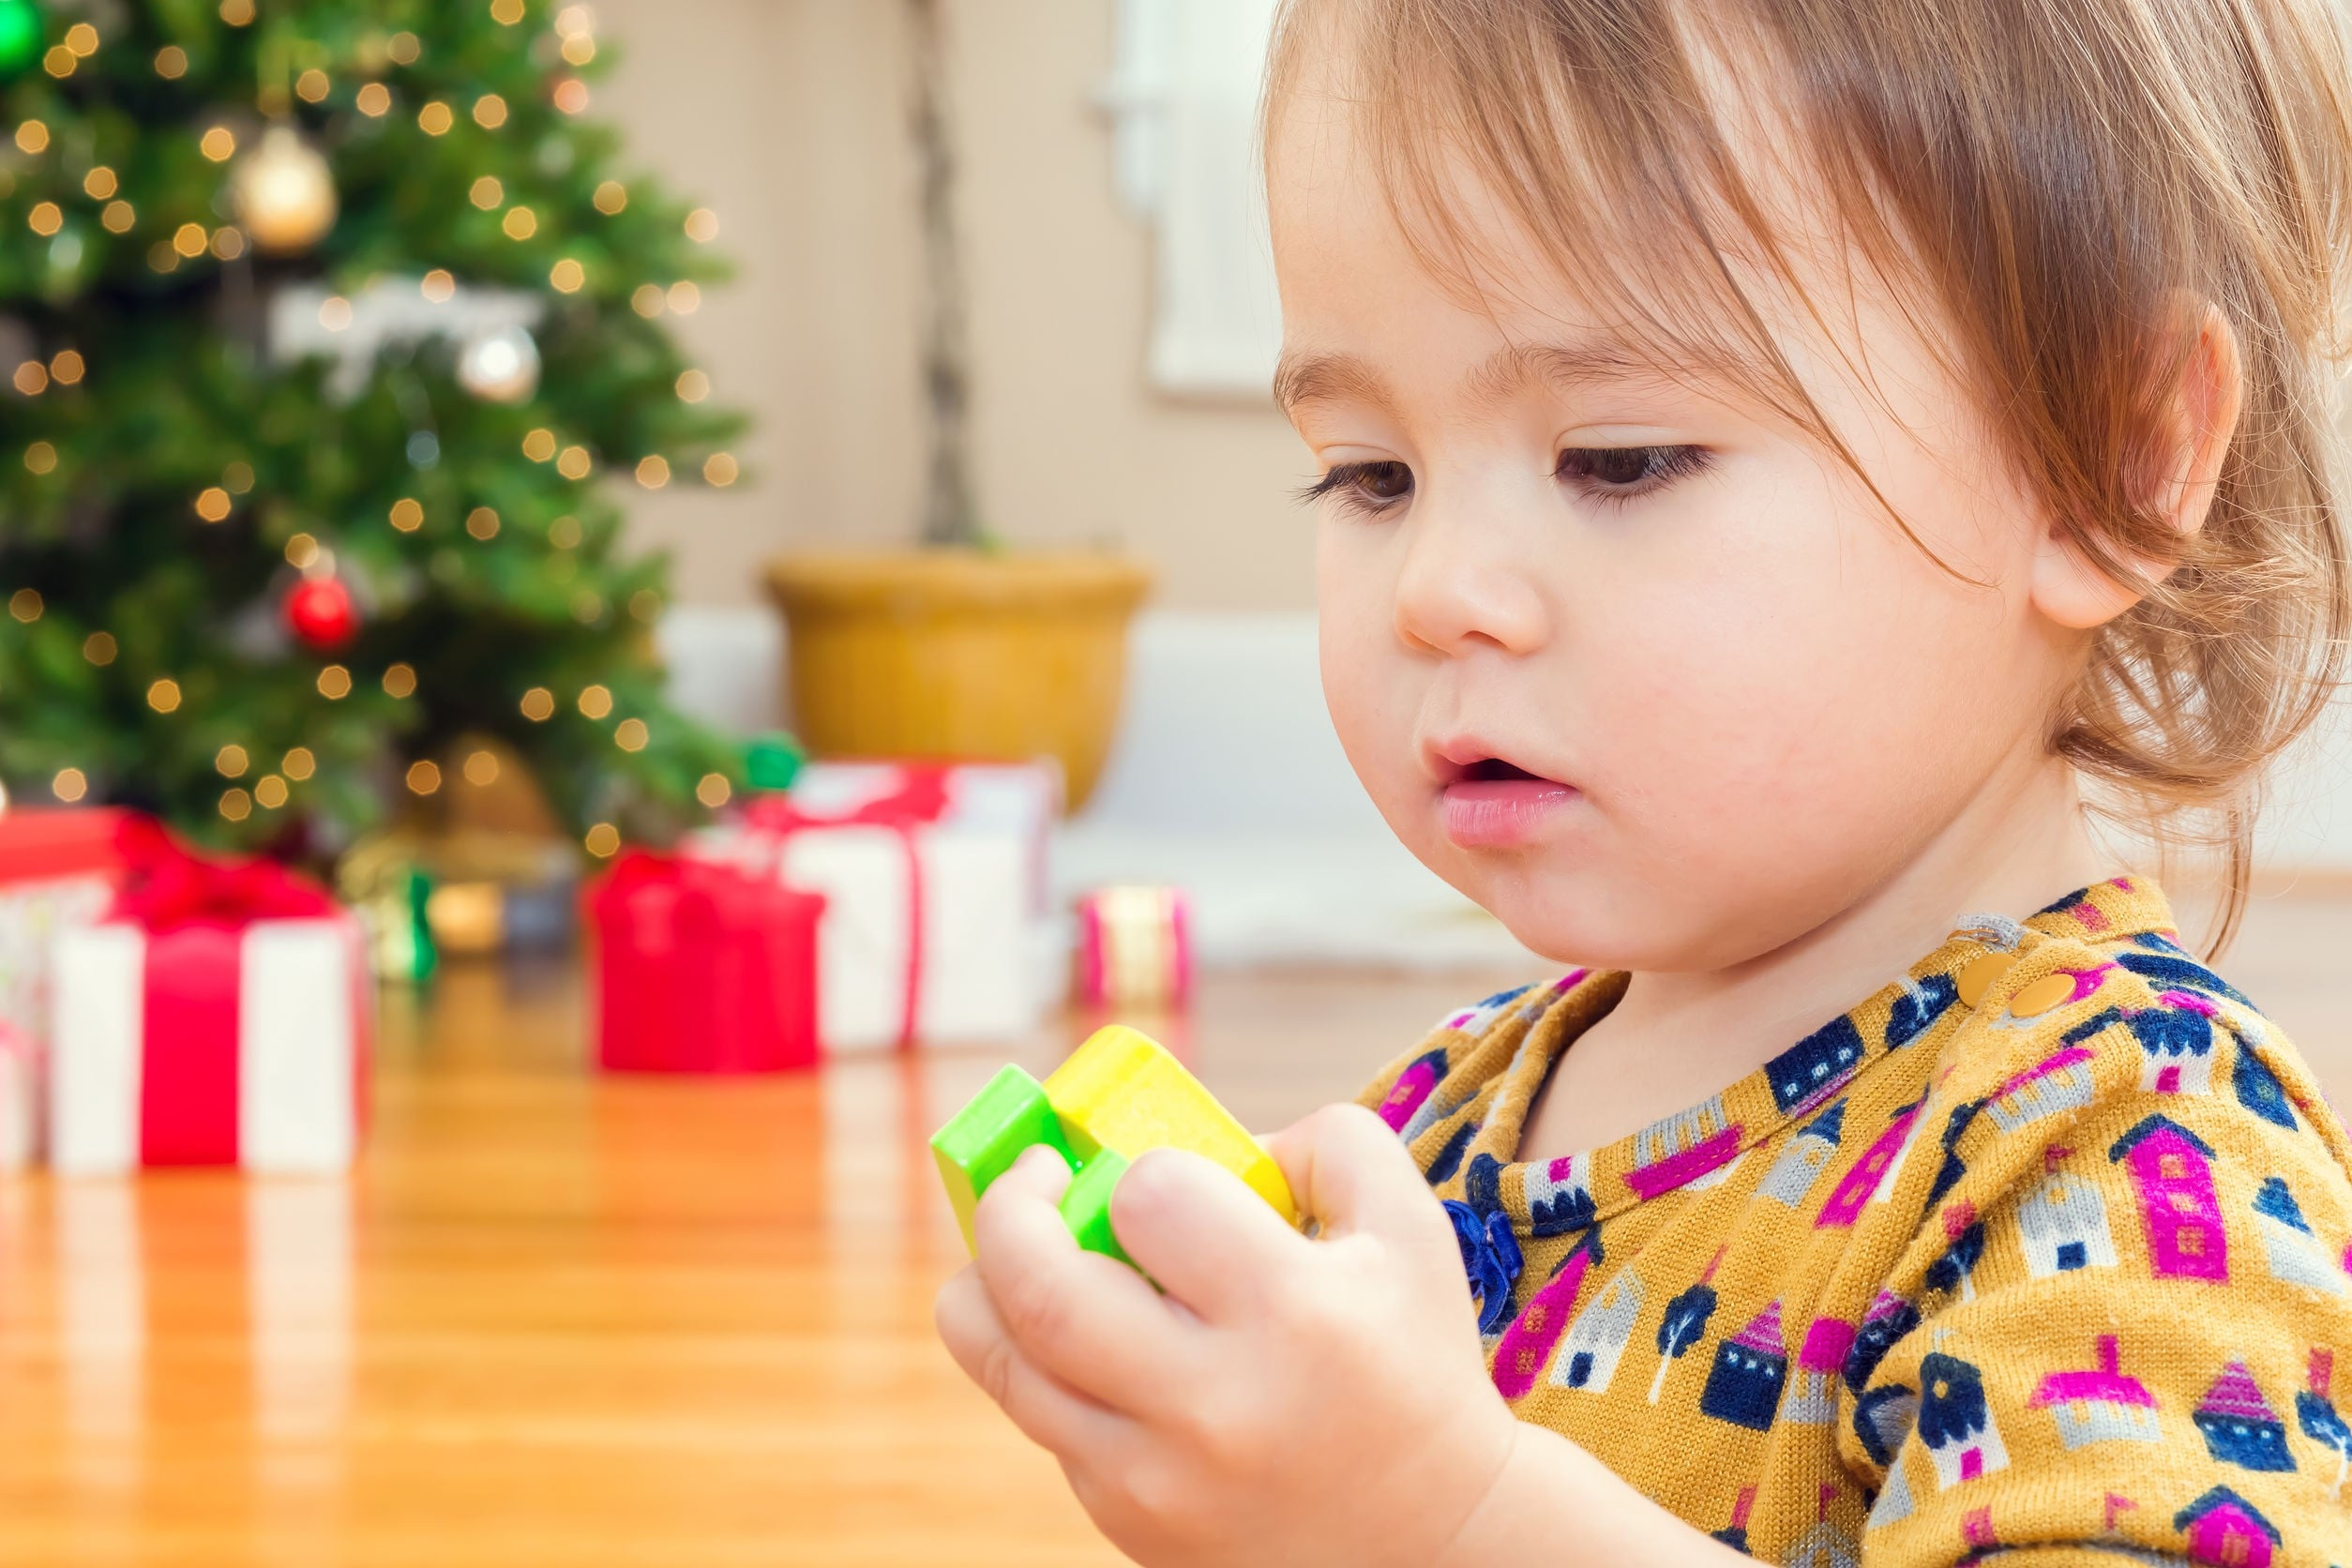 Before You Gift: The Year's Most Dangerous Toys